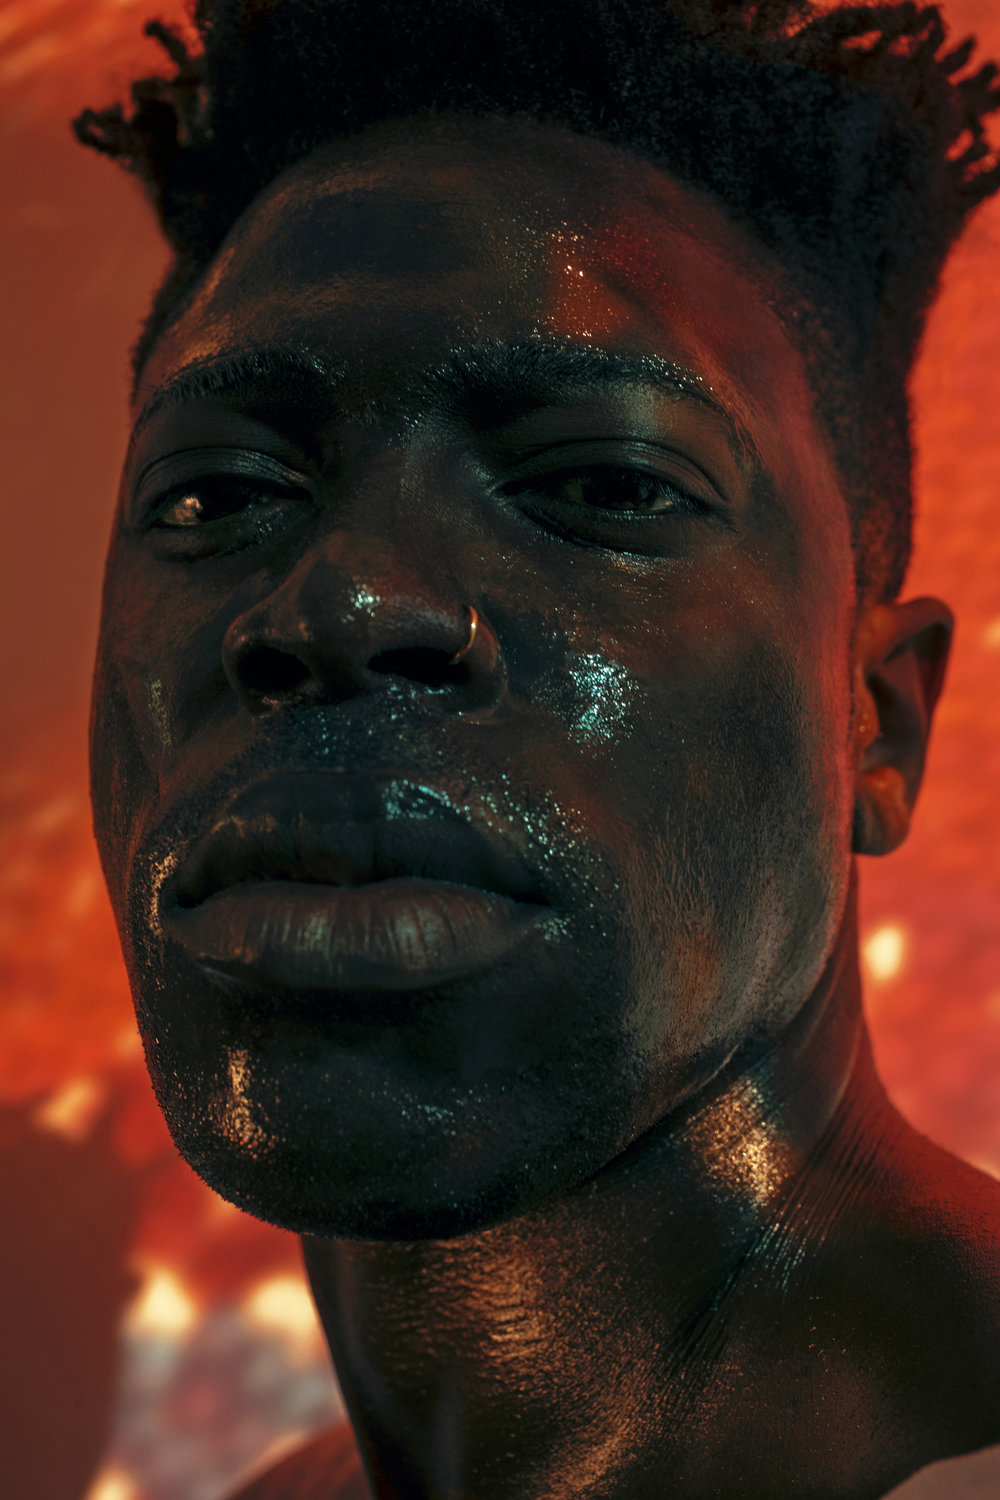 Moses Sumney delves into lovelessness on his debut album, 'Aromanticism' |gal-dem: - An in-depth feature on the singer as he releases 'Aromanticism'